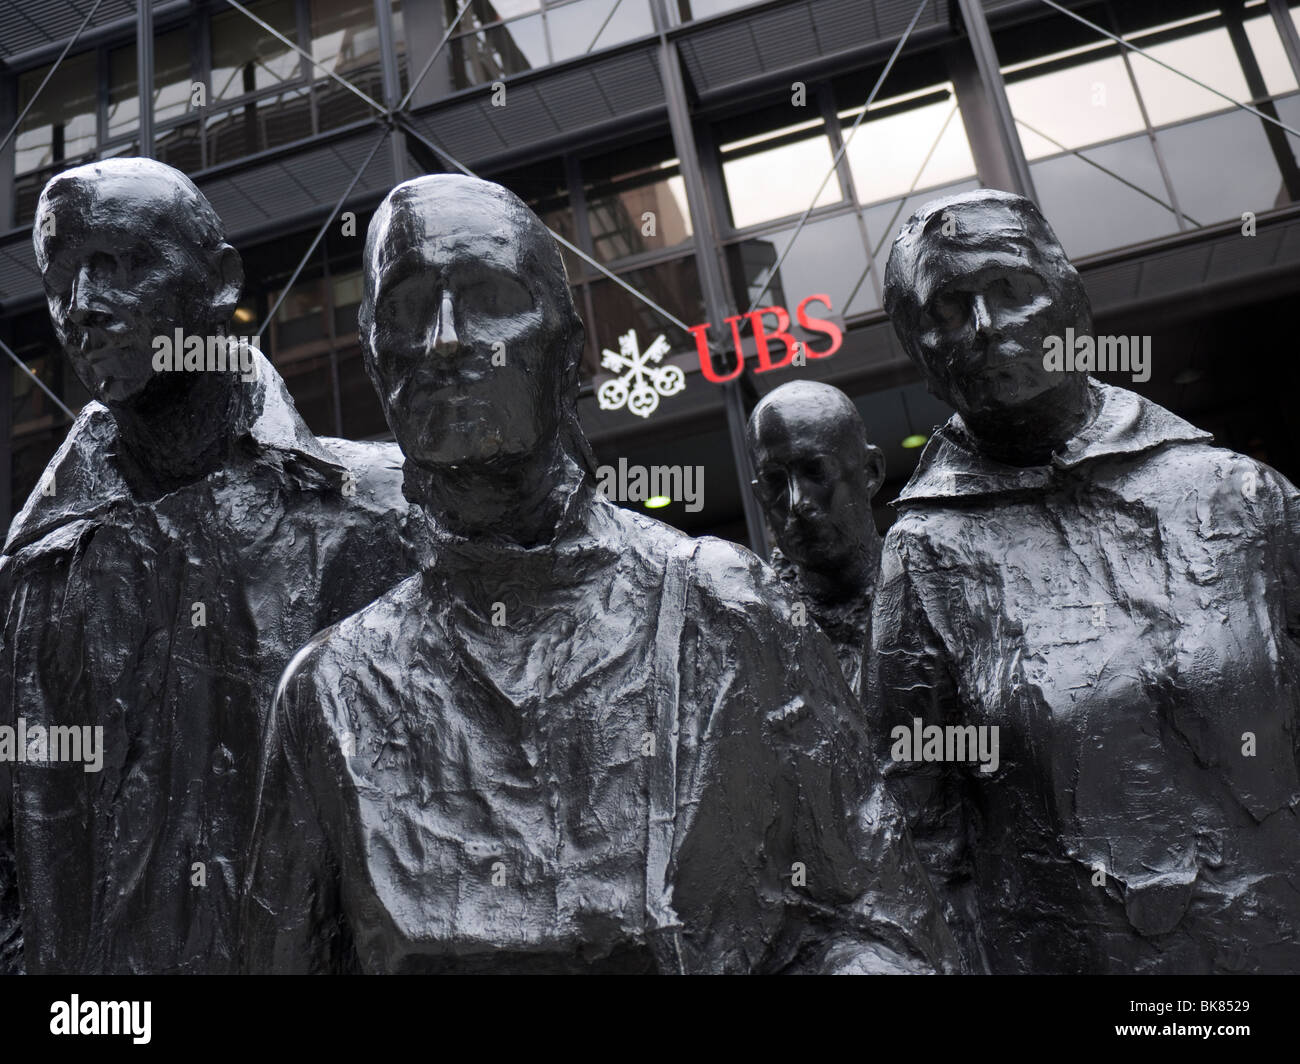 UBS headquarters, Broadgate, London, with statue in foreground, George Segal Rush Hour sculpture - Stock Image